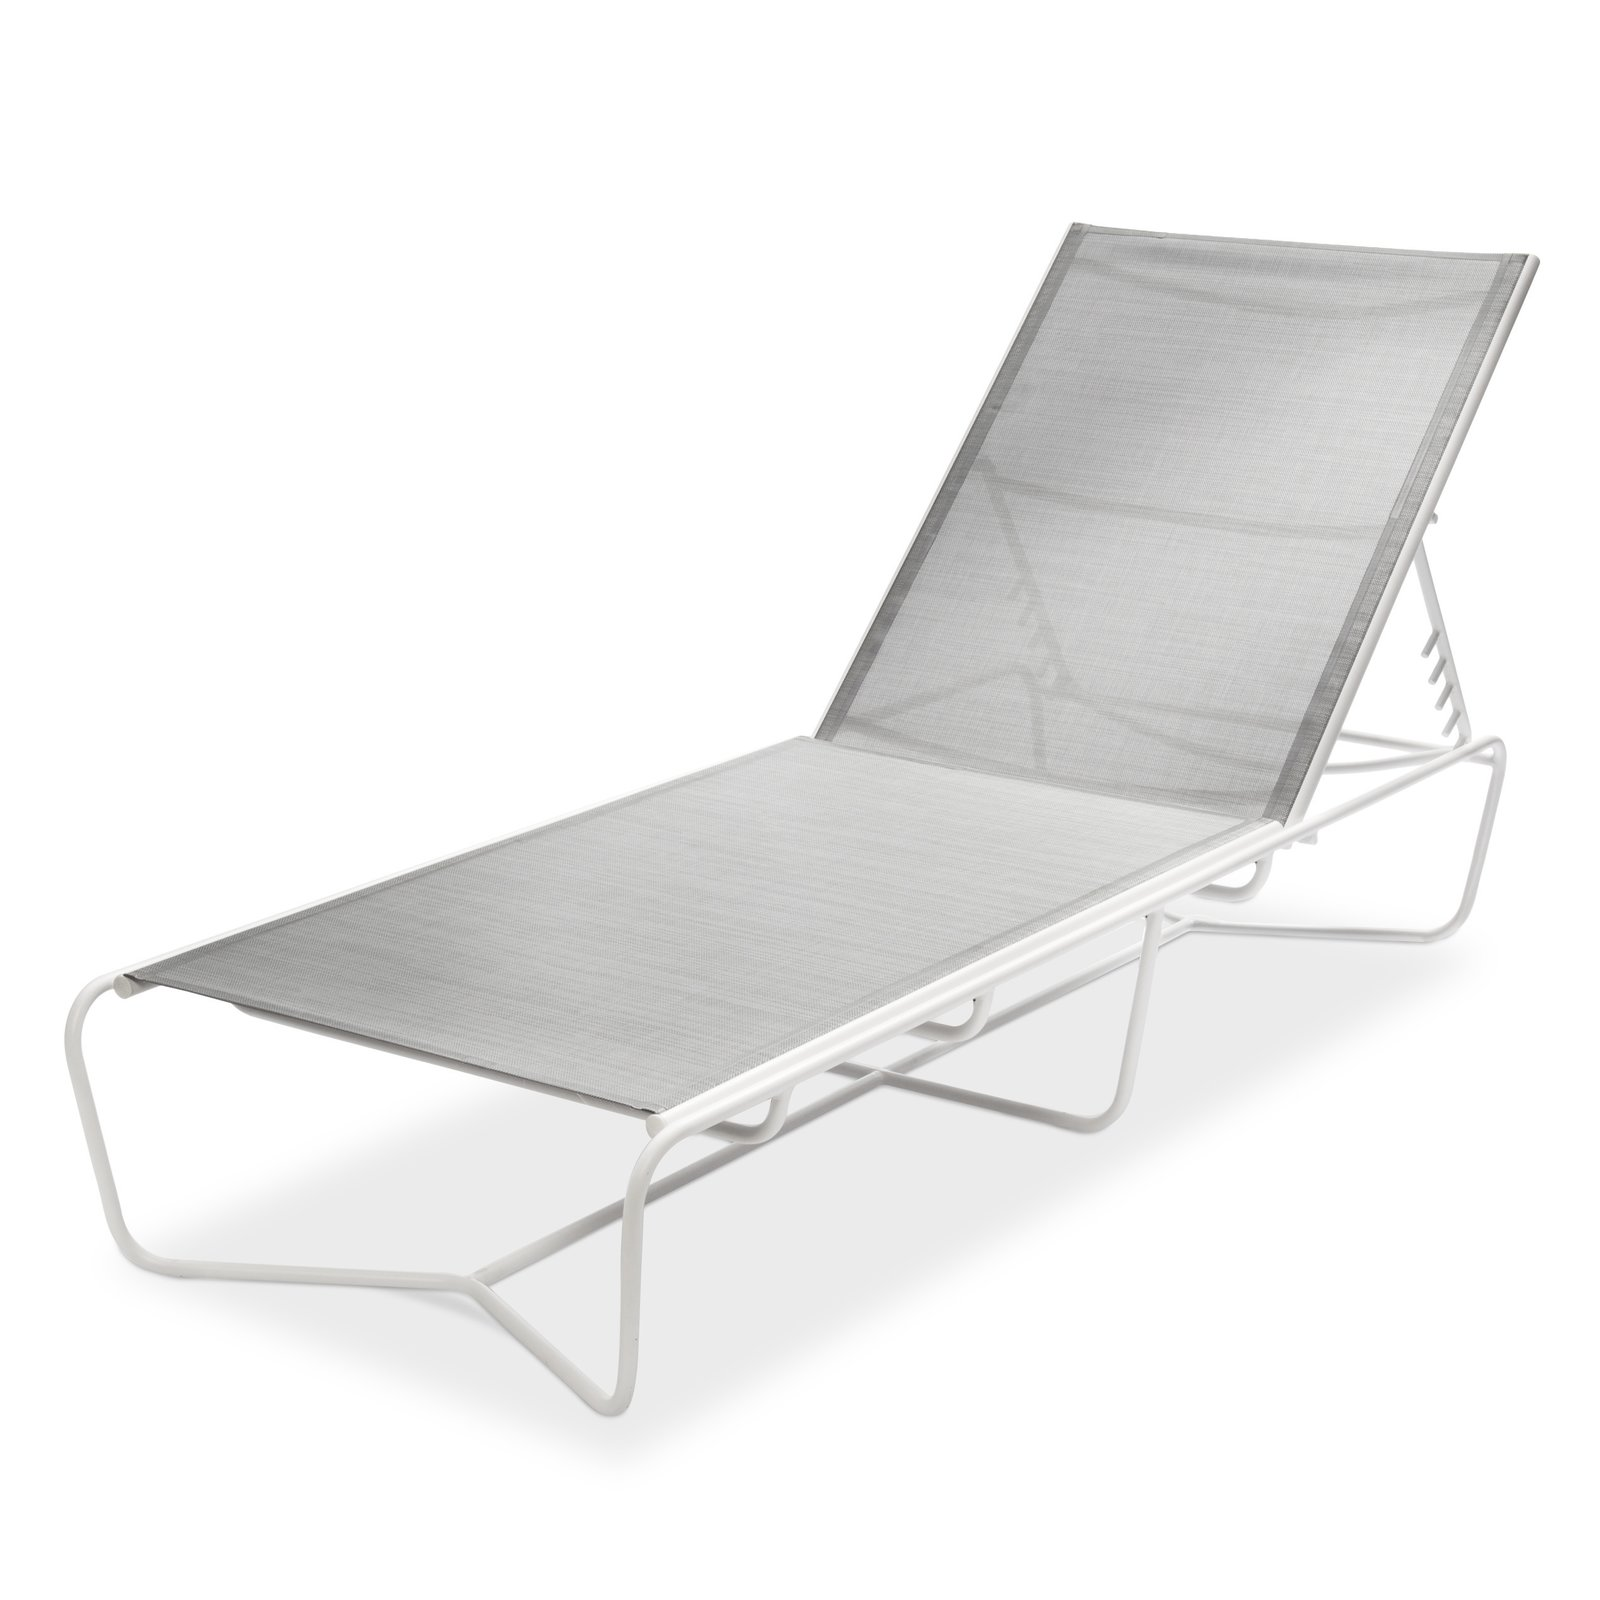 Outdoor Chaise Lounge, $179.99; available in gray or white; designed by Chris Deam and Nick Dine for Modern by Dwell Magazine for Target   Photo 17 of 17 in Modern by Dwell Magazine: Outdoor Collection